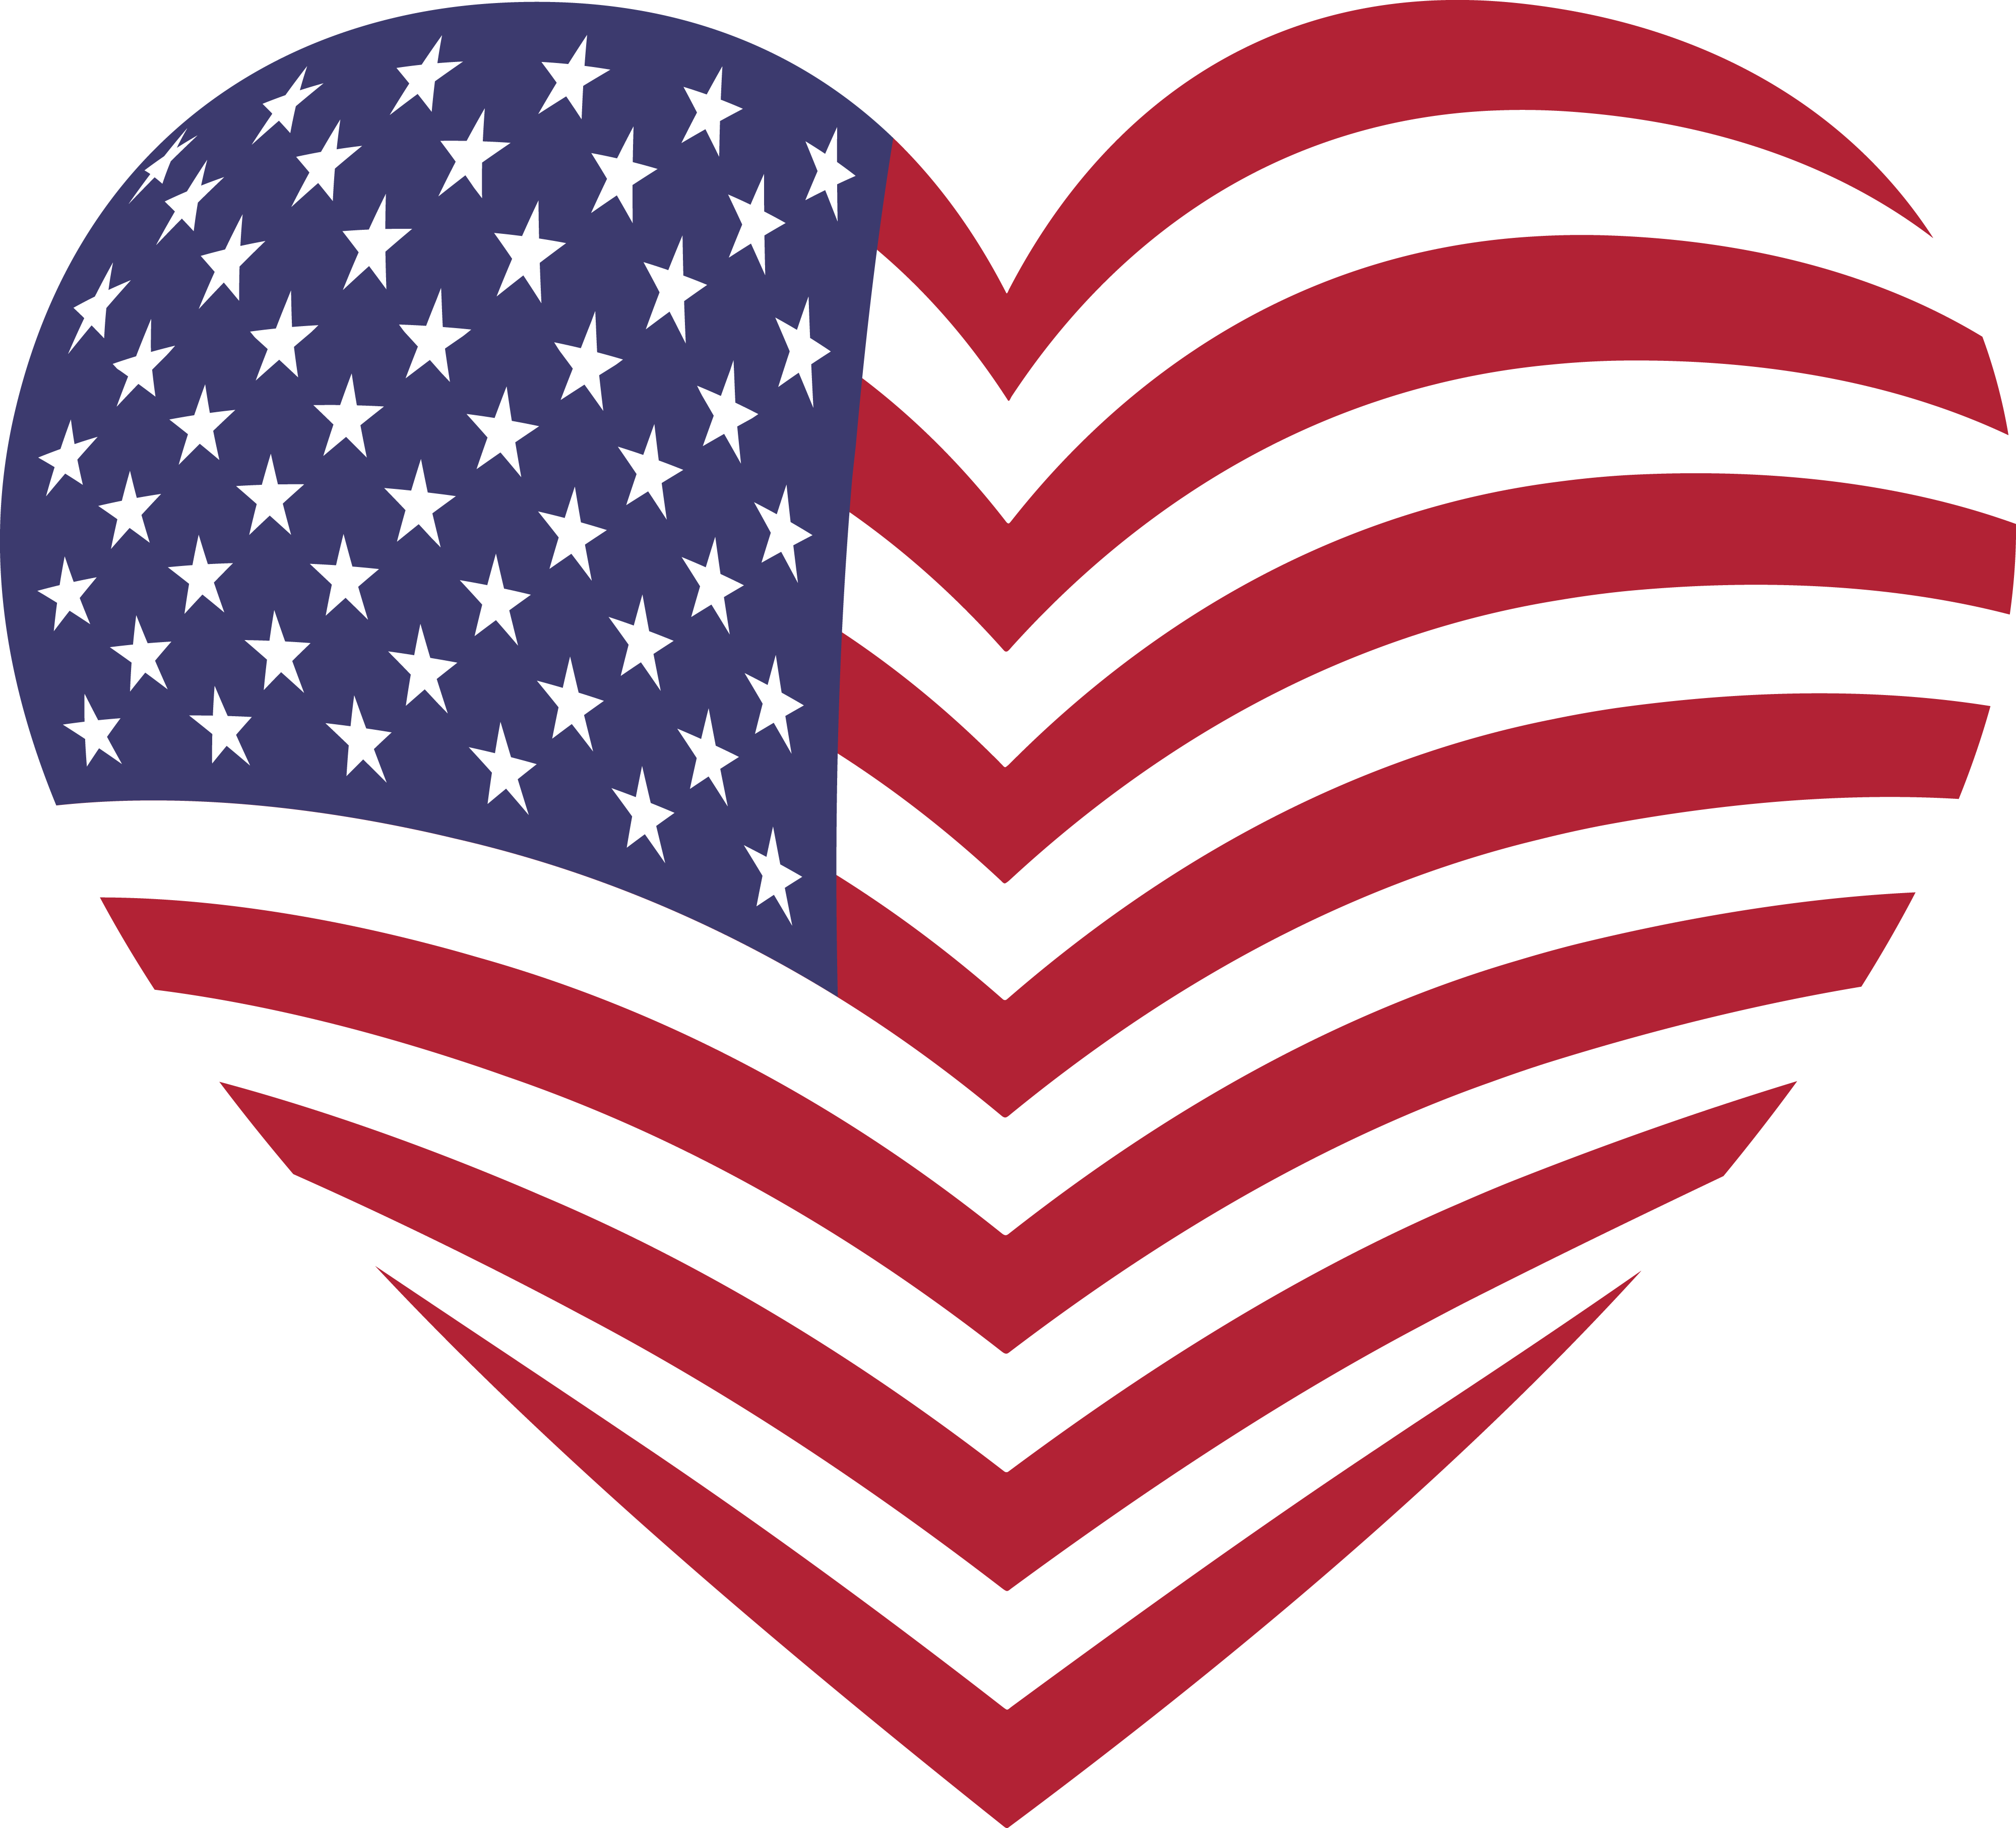 free clipart of a heart with an american flag pattern rh free clipartof com american flag clip art free download free american flag clip art black and white